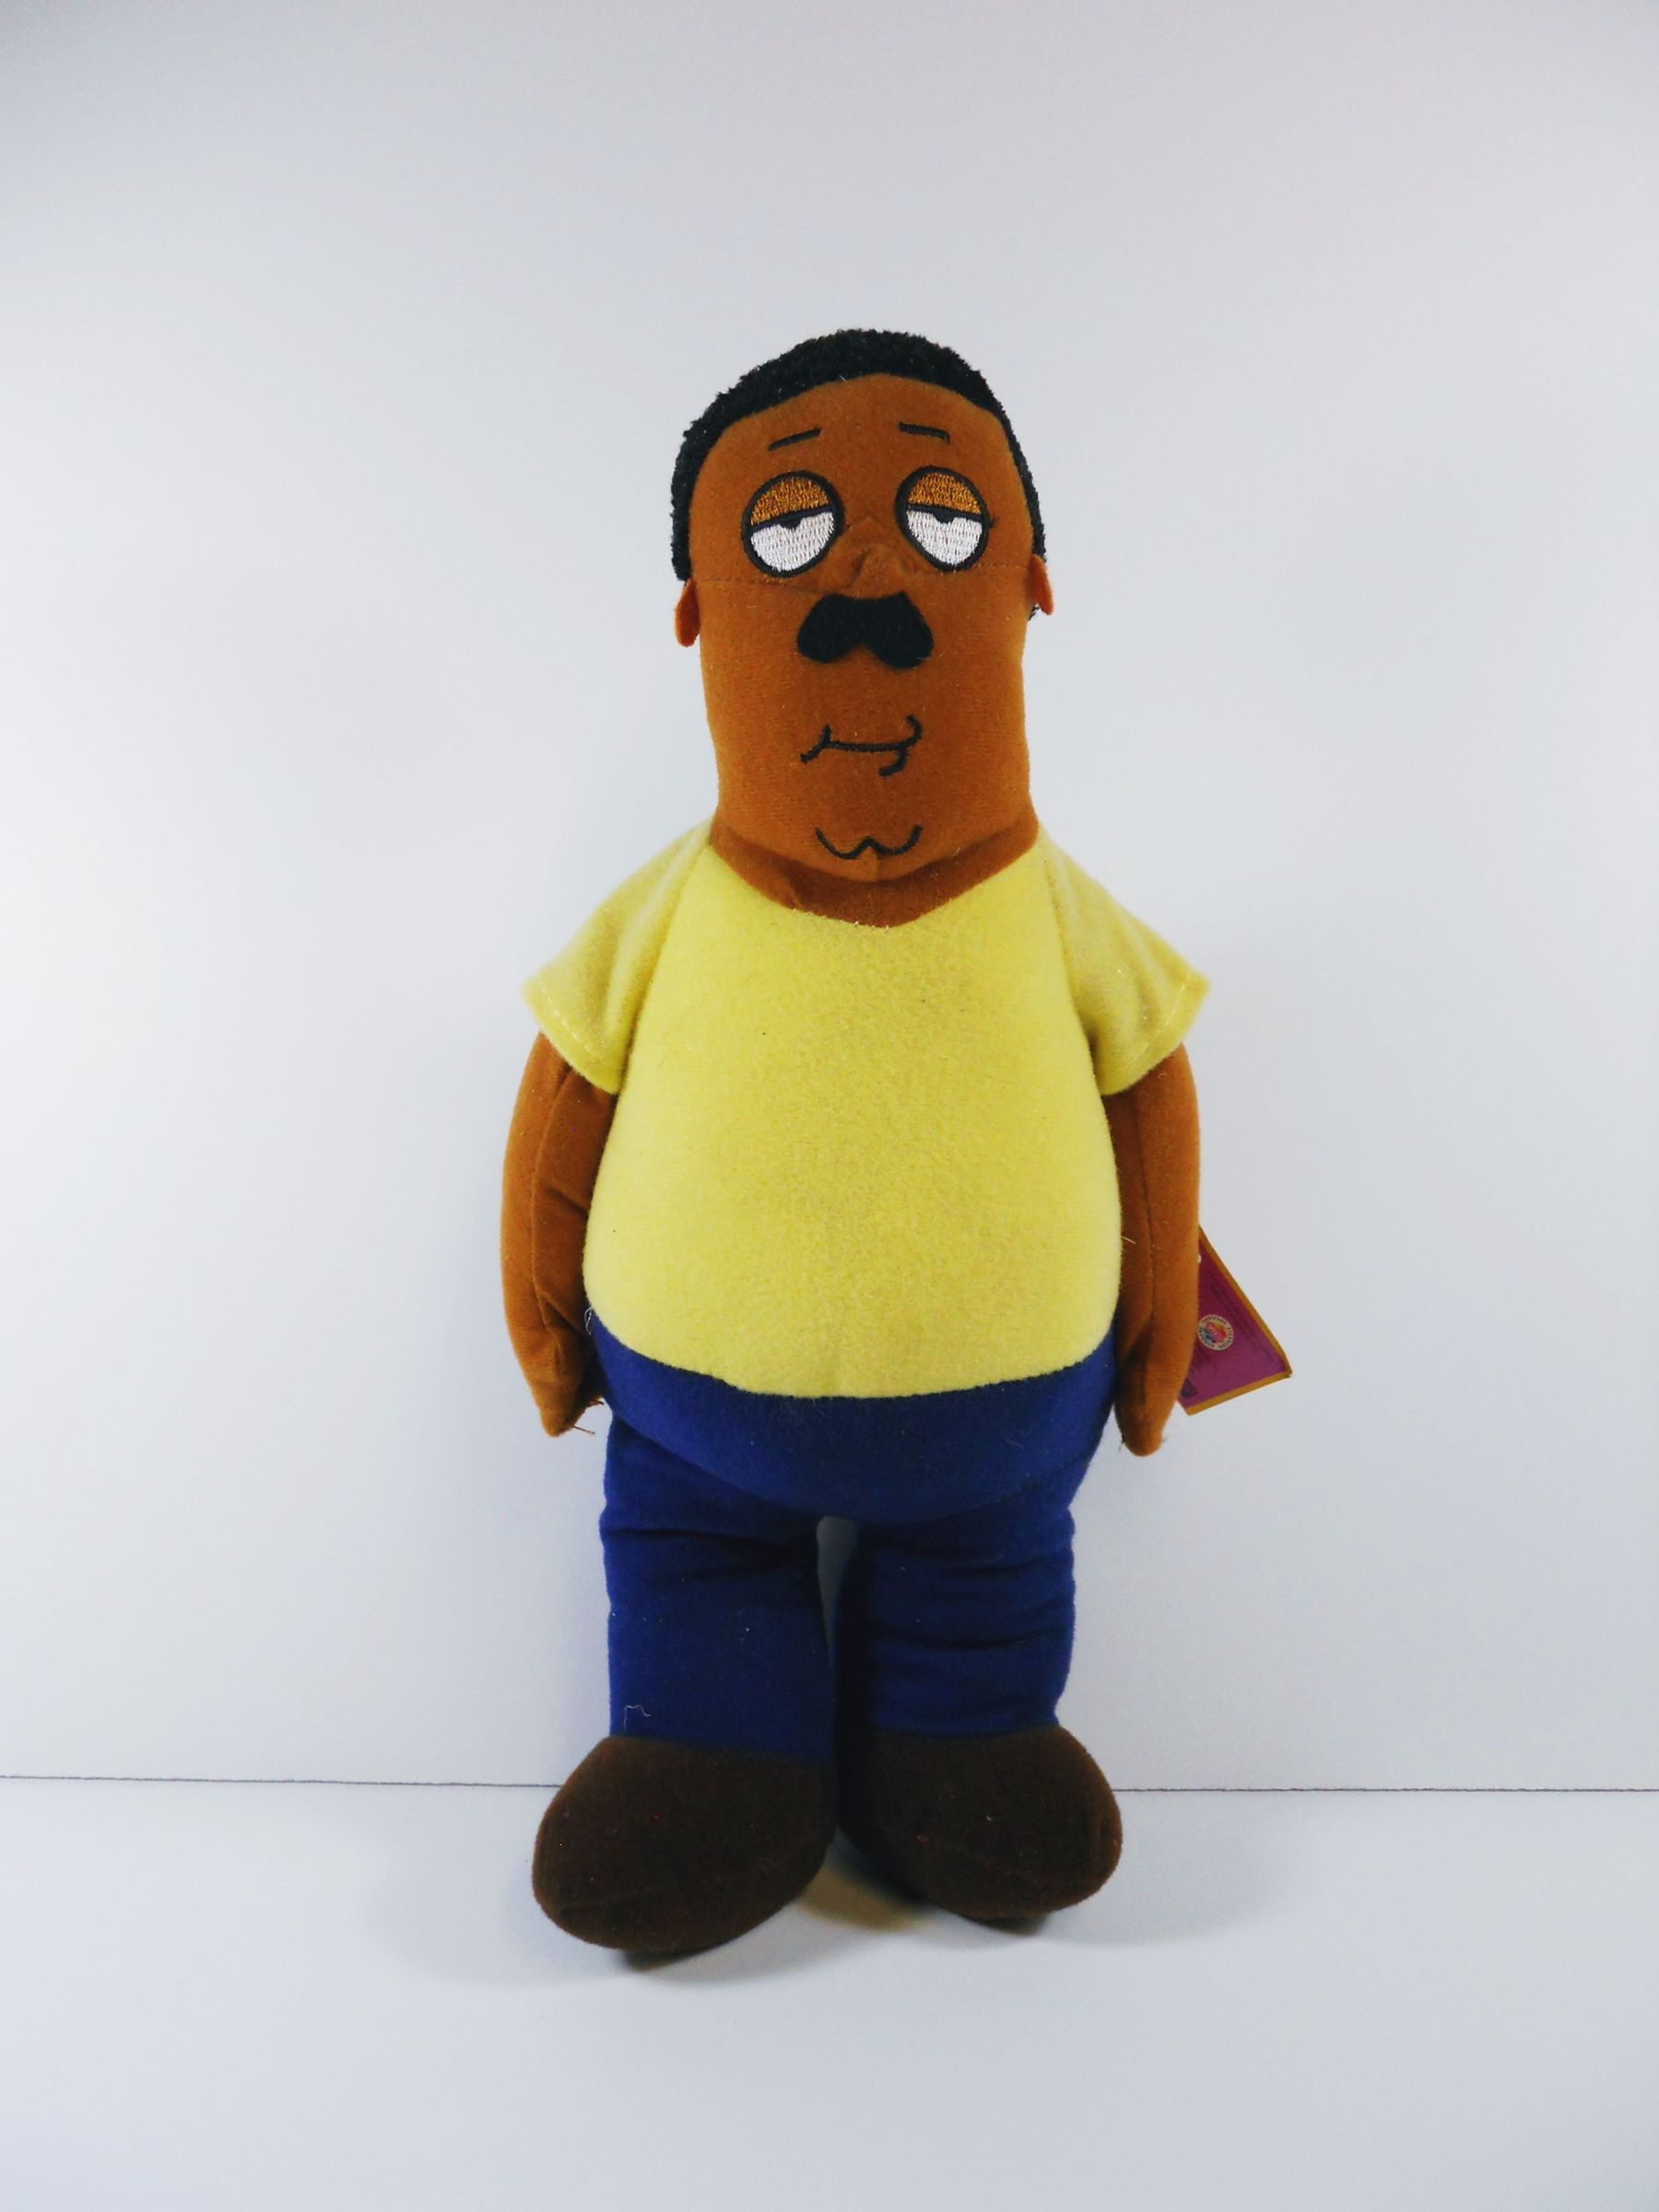 The Cleveland Show Cleveland Brown Stuffed Plush Sold Figures